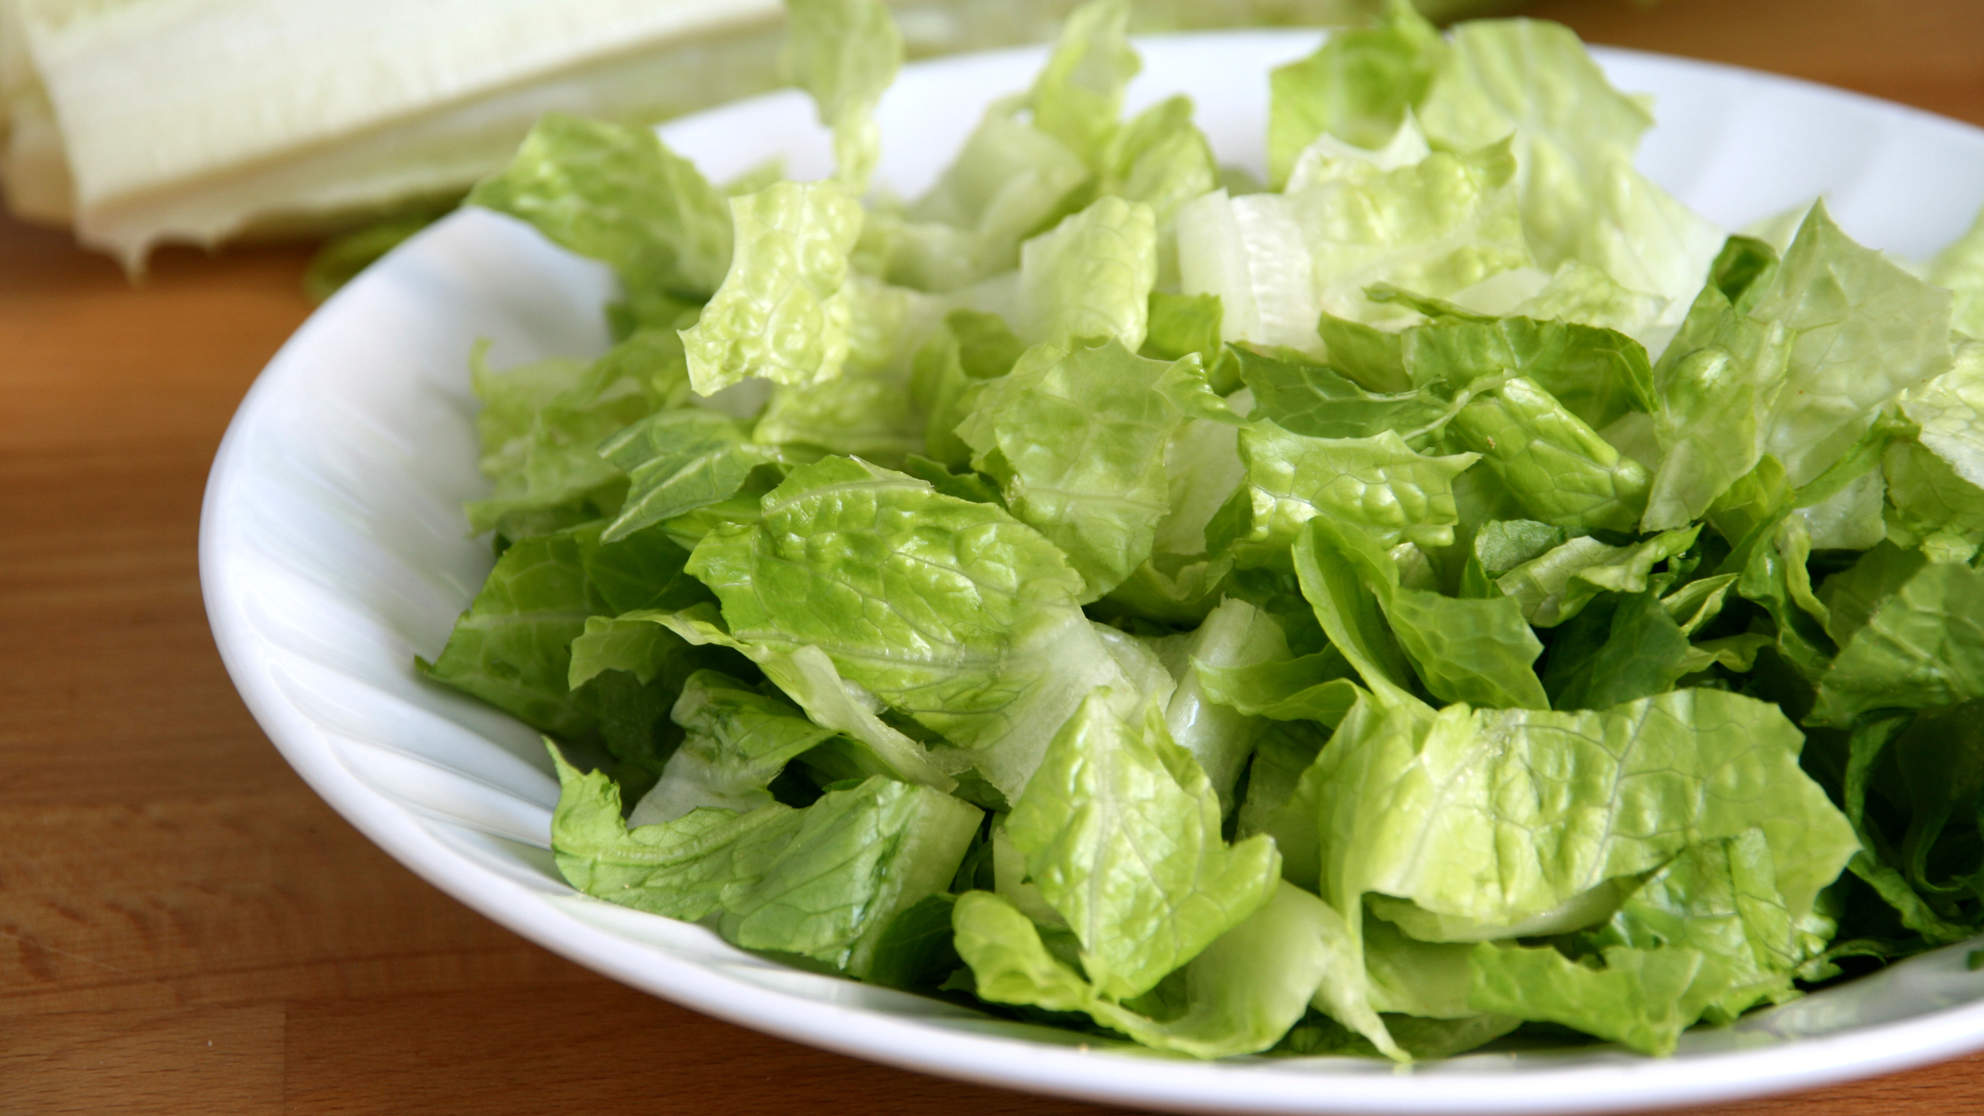 Salads and Wraps Sold at Kroger and Trader Joe's May Have Been Contaminated By a Parasite